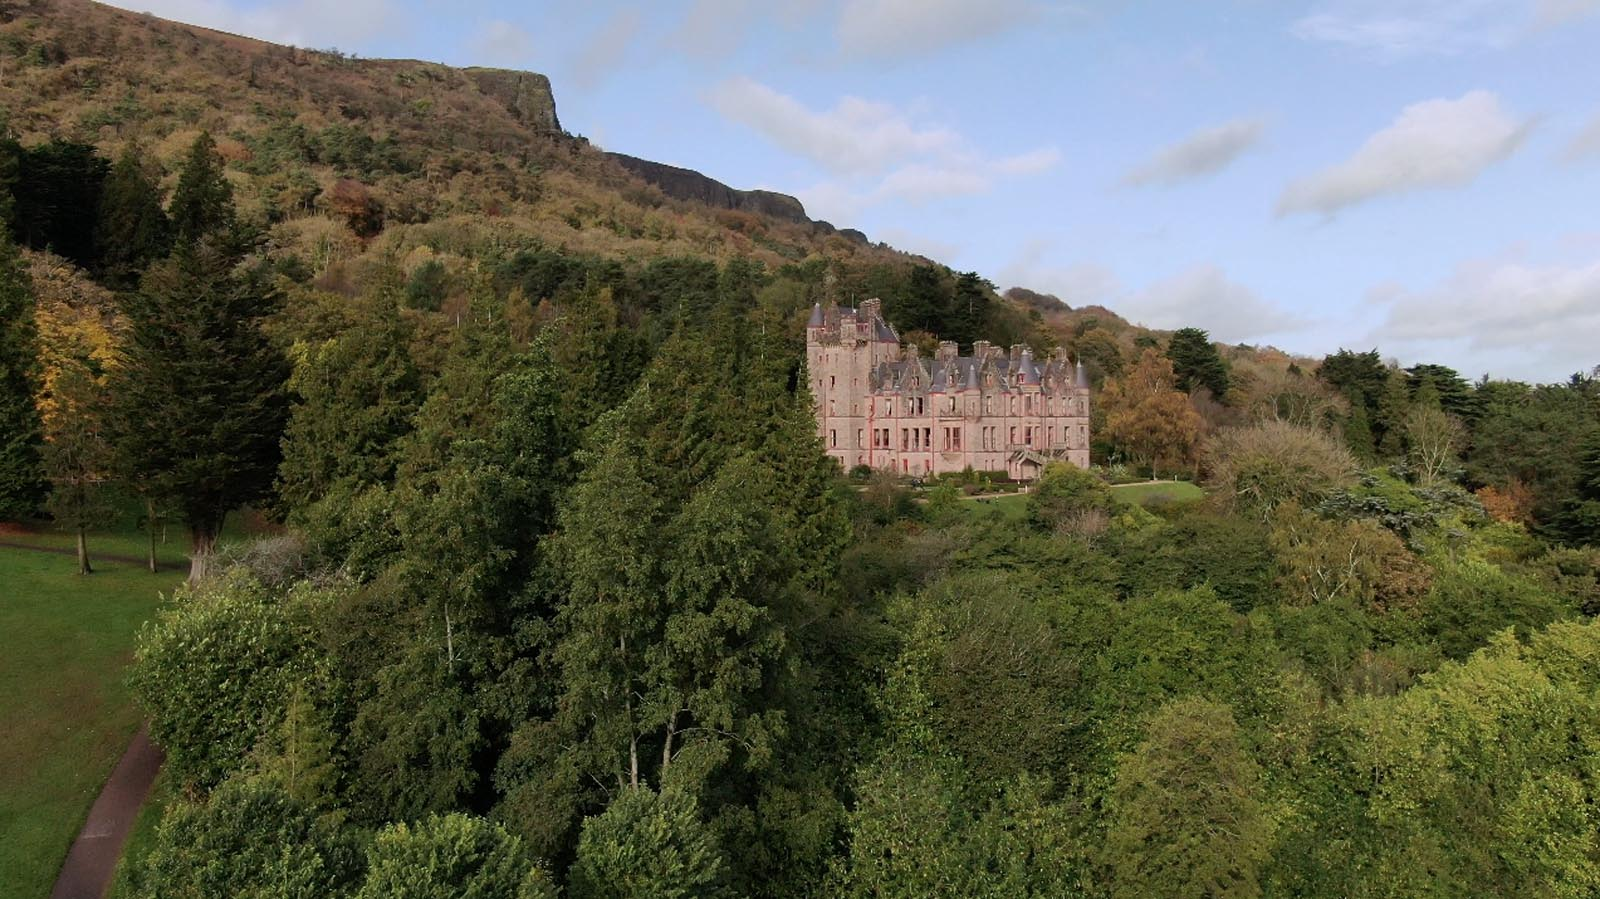 Commercial, residential, property drone photography and video Dublin, Wicklow, Monaghan, Cavan, Ireland portfolio - screenshot 5 of Belfast Castle video